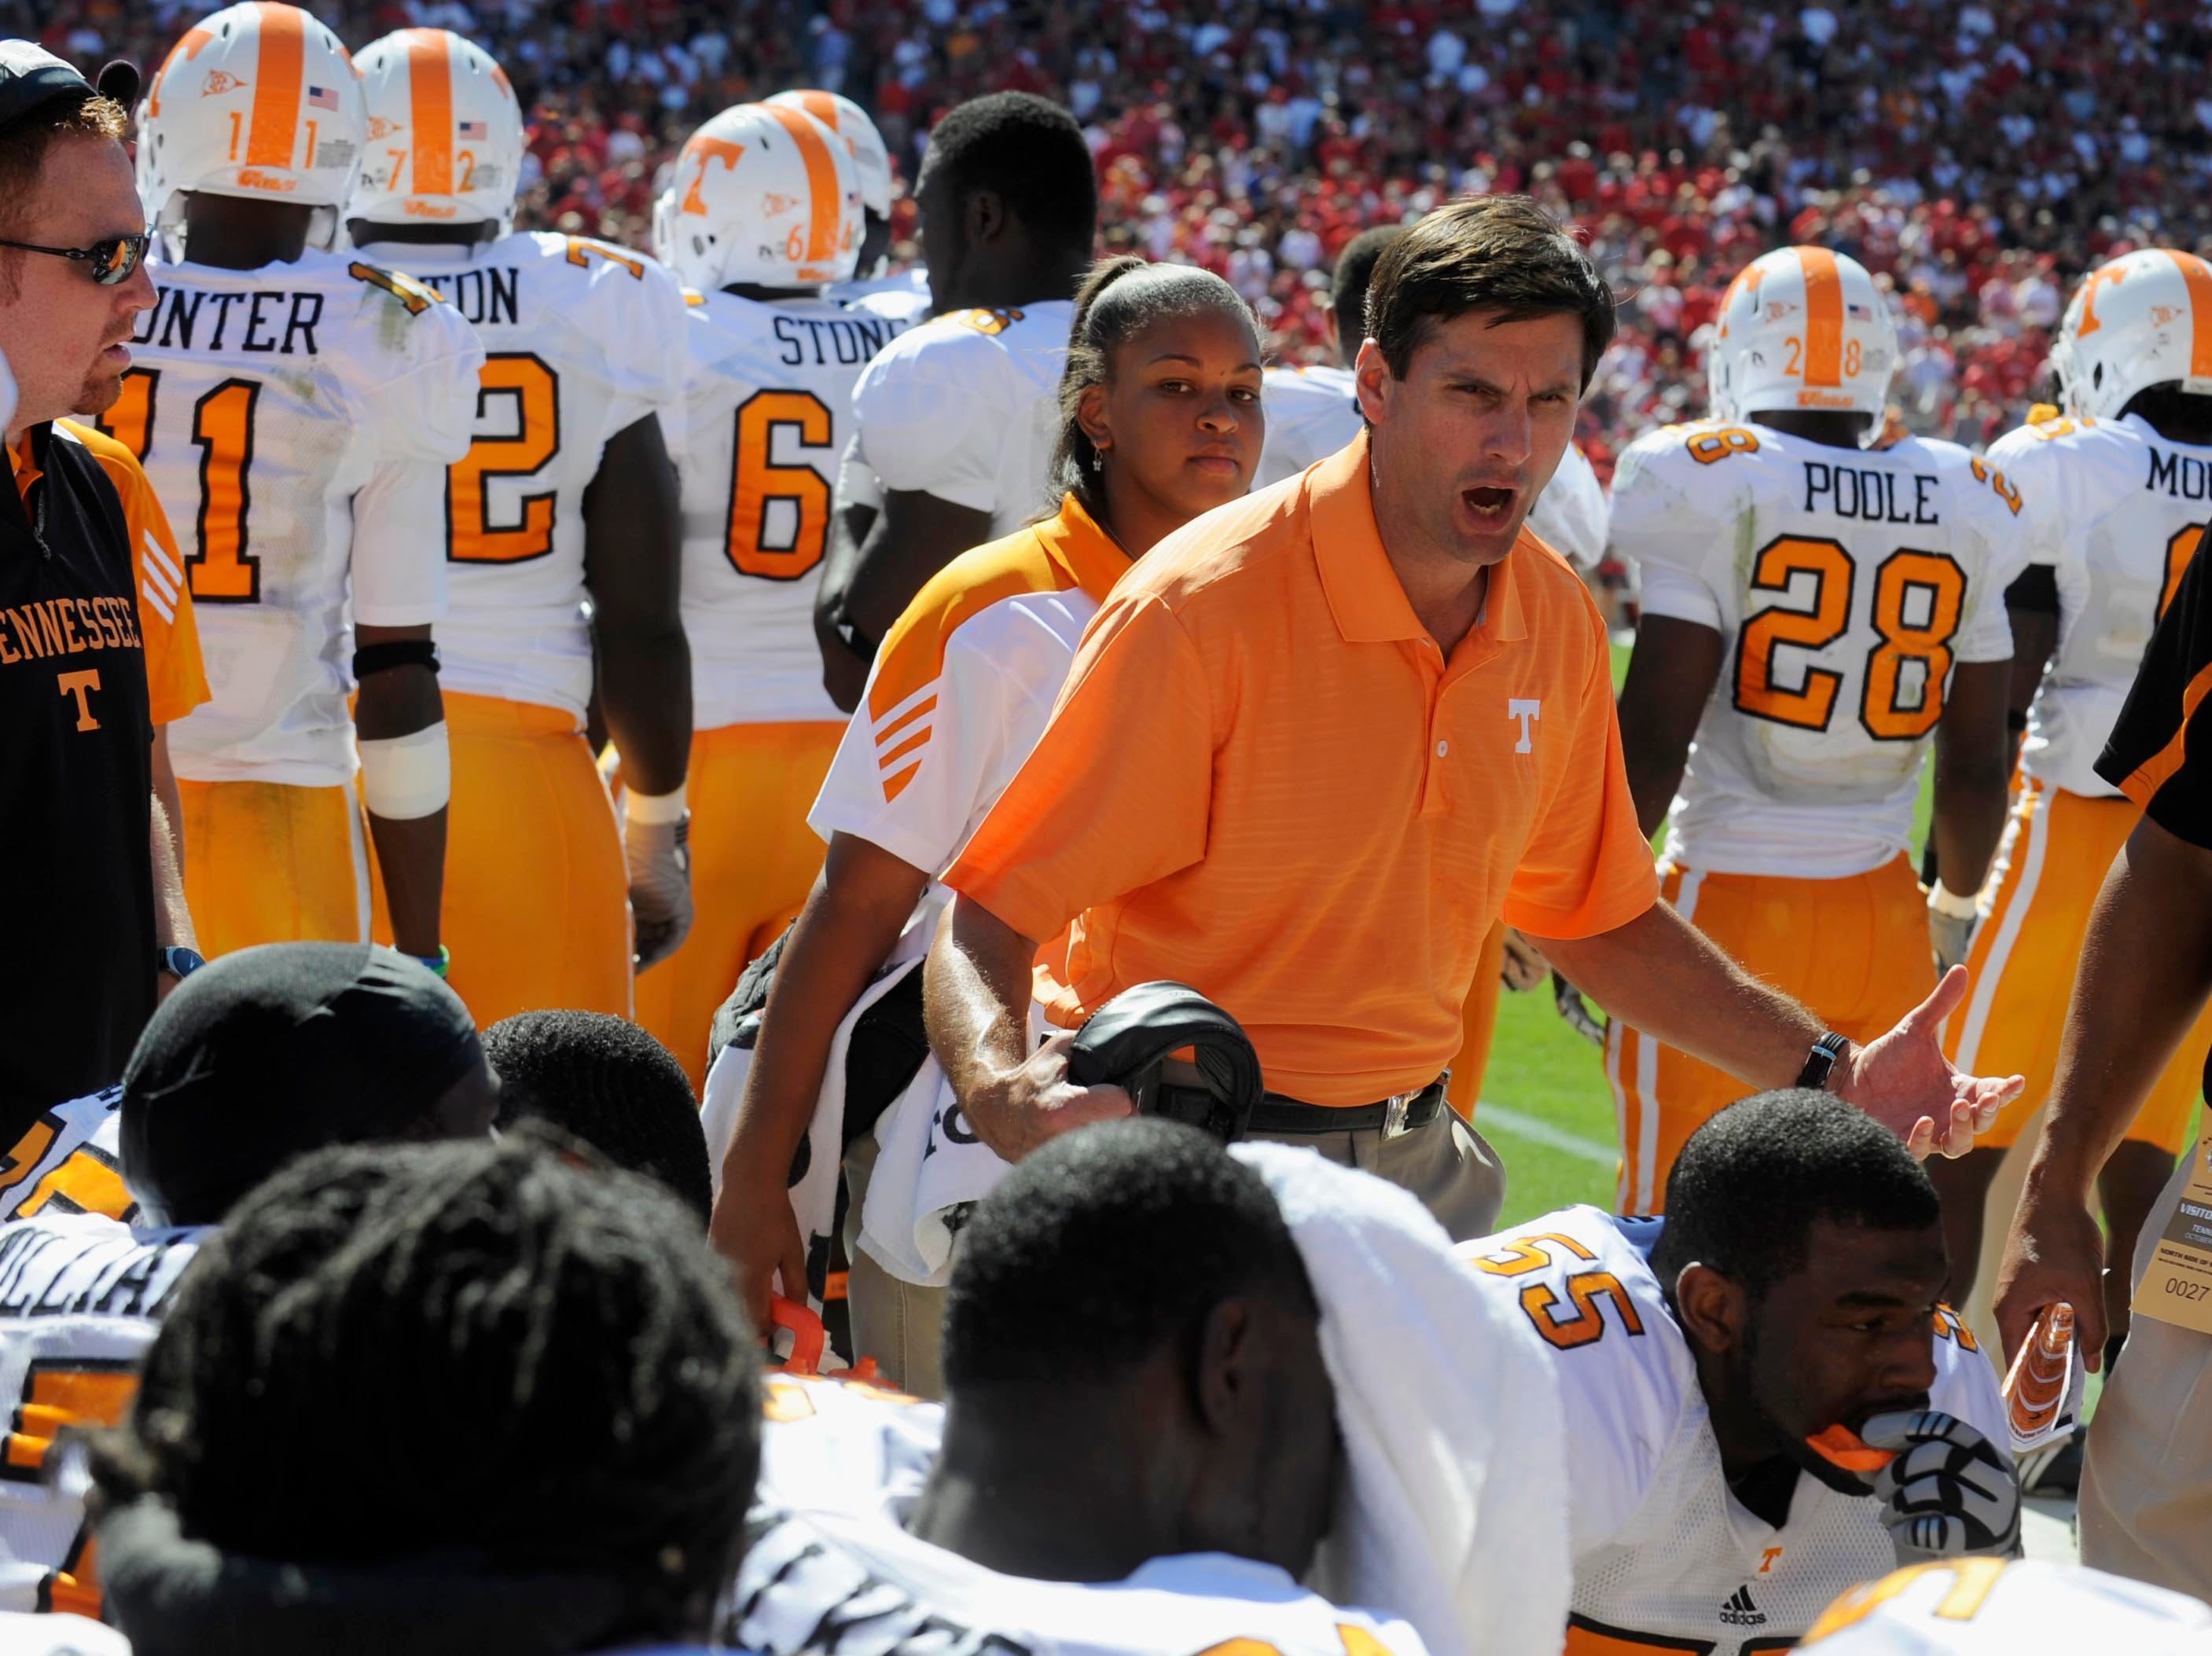 "Tennessee head coach Derek Dooley yells, ""don't look at the score, play football."" at his players on the bench during the second half Saturday, Oct. 9, 2010 in Sanford Stadium in Athens, GA."